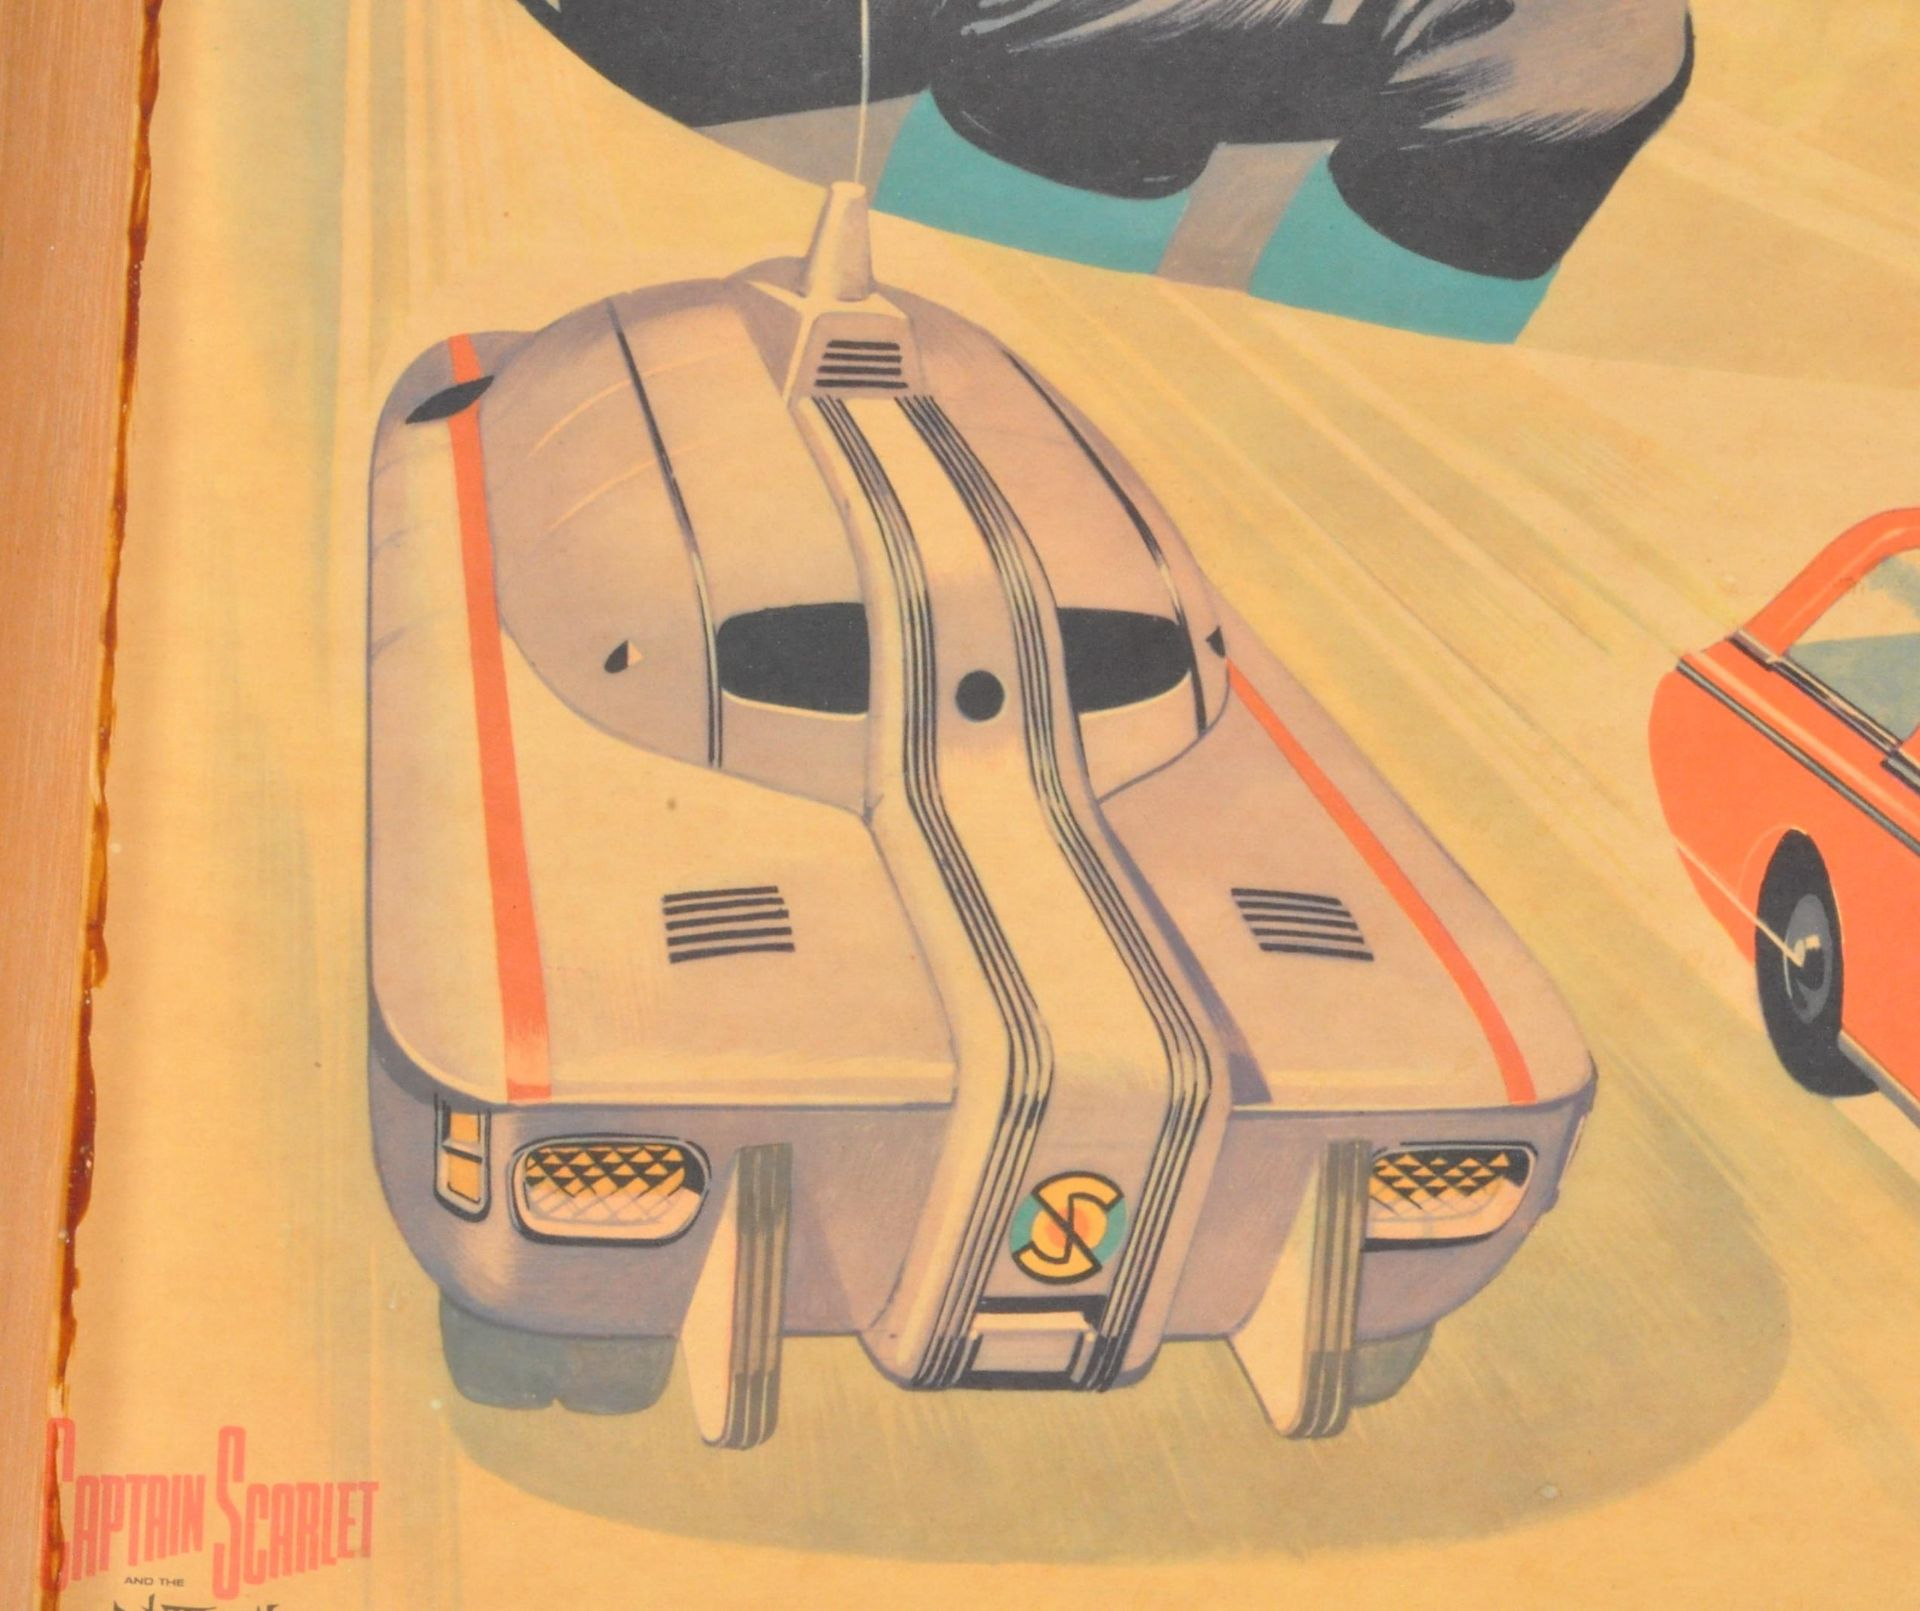 RARE CAPTAIN SCARLET ANGLO CONFECTIONERY SHOP DISPLAY POSTER BOARD - Image 7 of 9